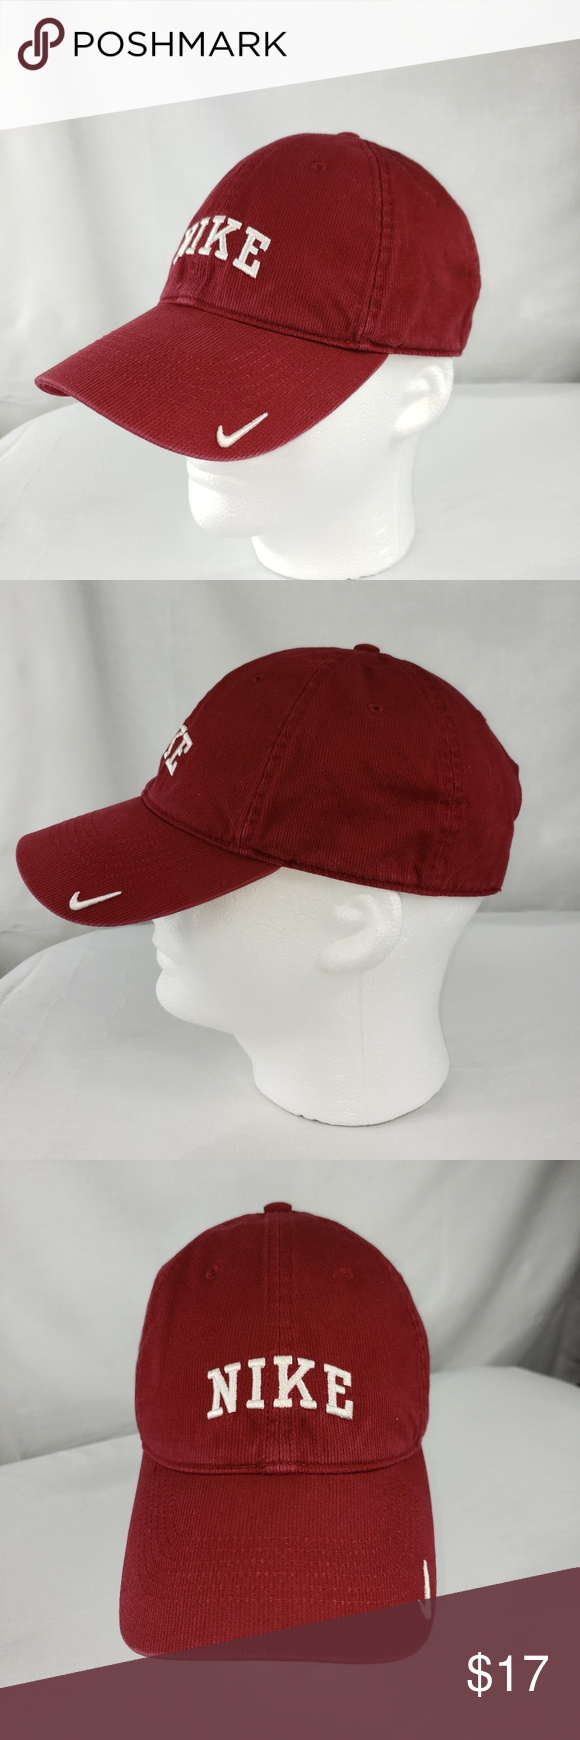 0275a11072d Maroon Nike Hat Good Condition